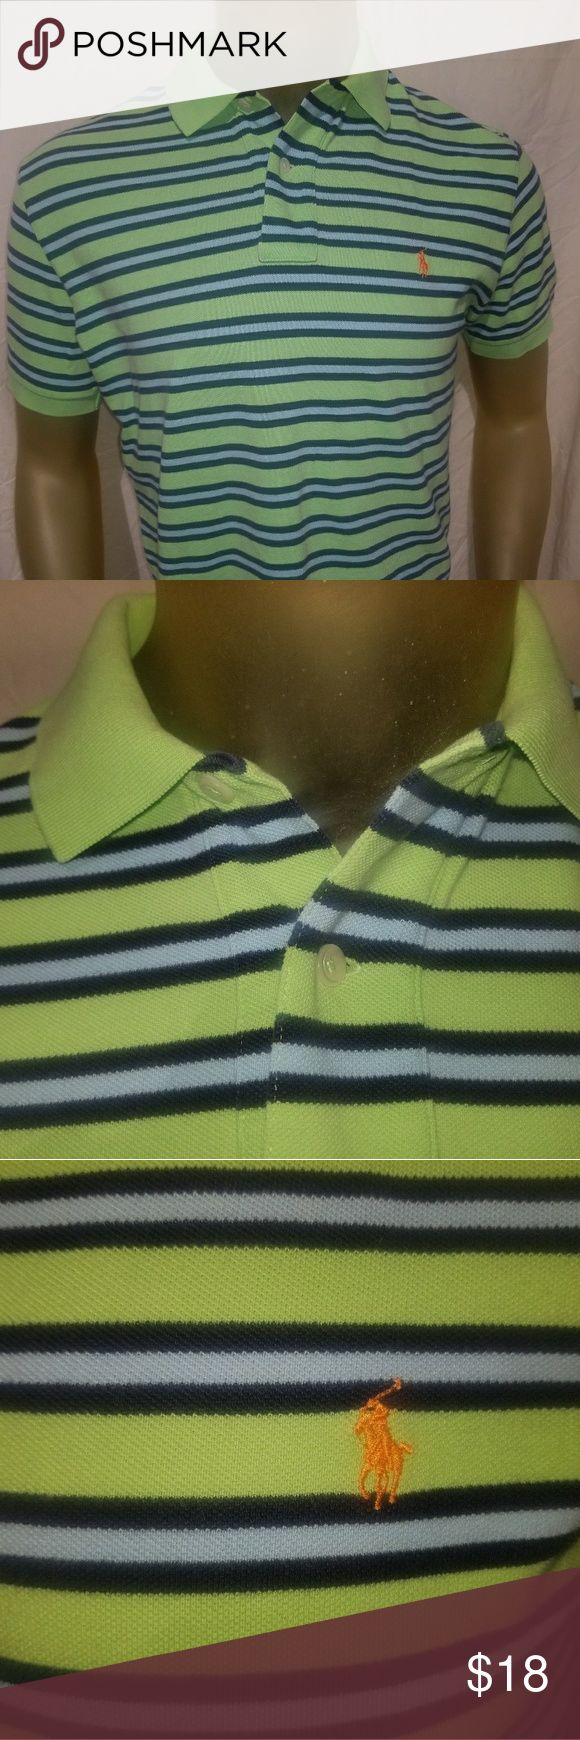 """Men Polo Ralph Lauren Polo Medium Shirt Up for sale is a a preowned Size medium Polo by Ralph Lauren Shirt.   Armpit to armpit: 22""""  Length from shoulder to bottom hem: 25""""  Shirt is in great condition. No rips no holes no stains etc.  Lime green, light blue, dark blue horizontal stripes. Orange pony. Polo by Ralph Lauren Shirts Polos"""